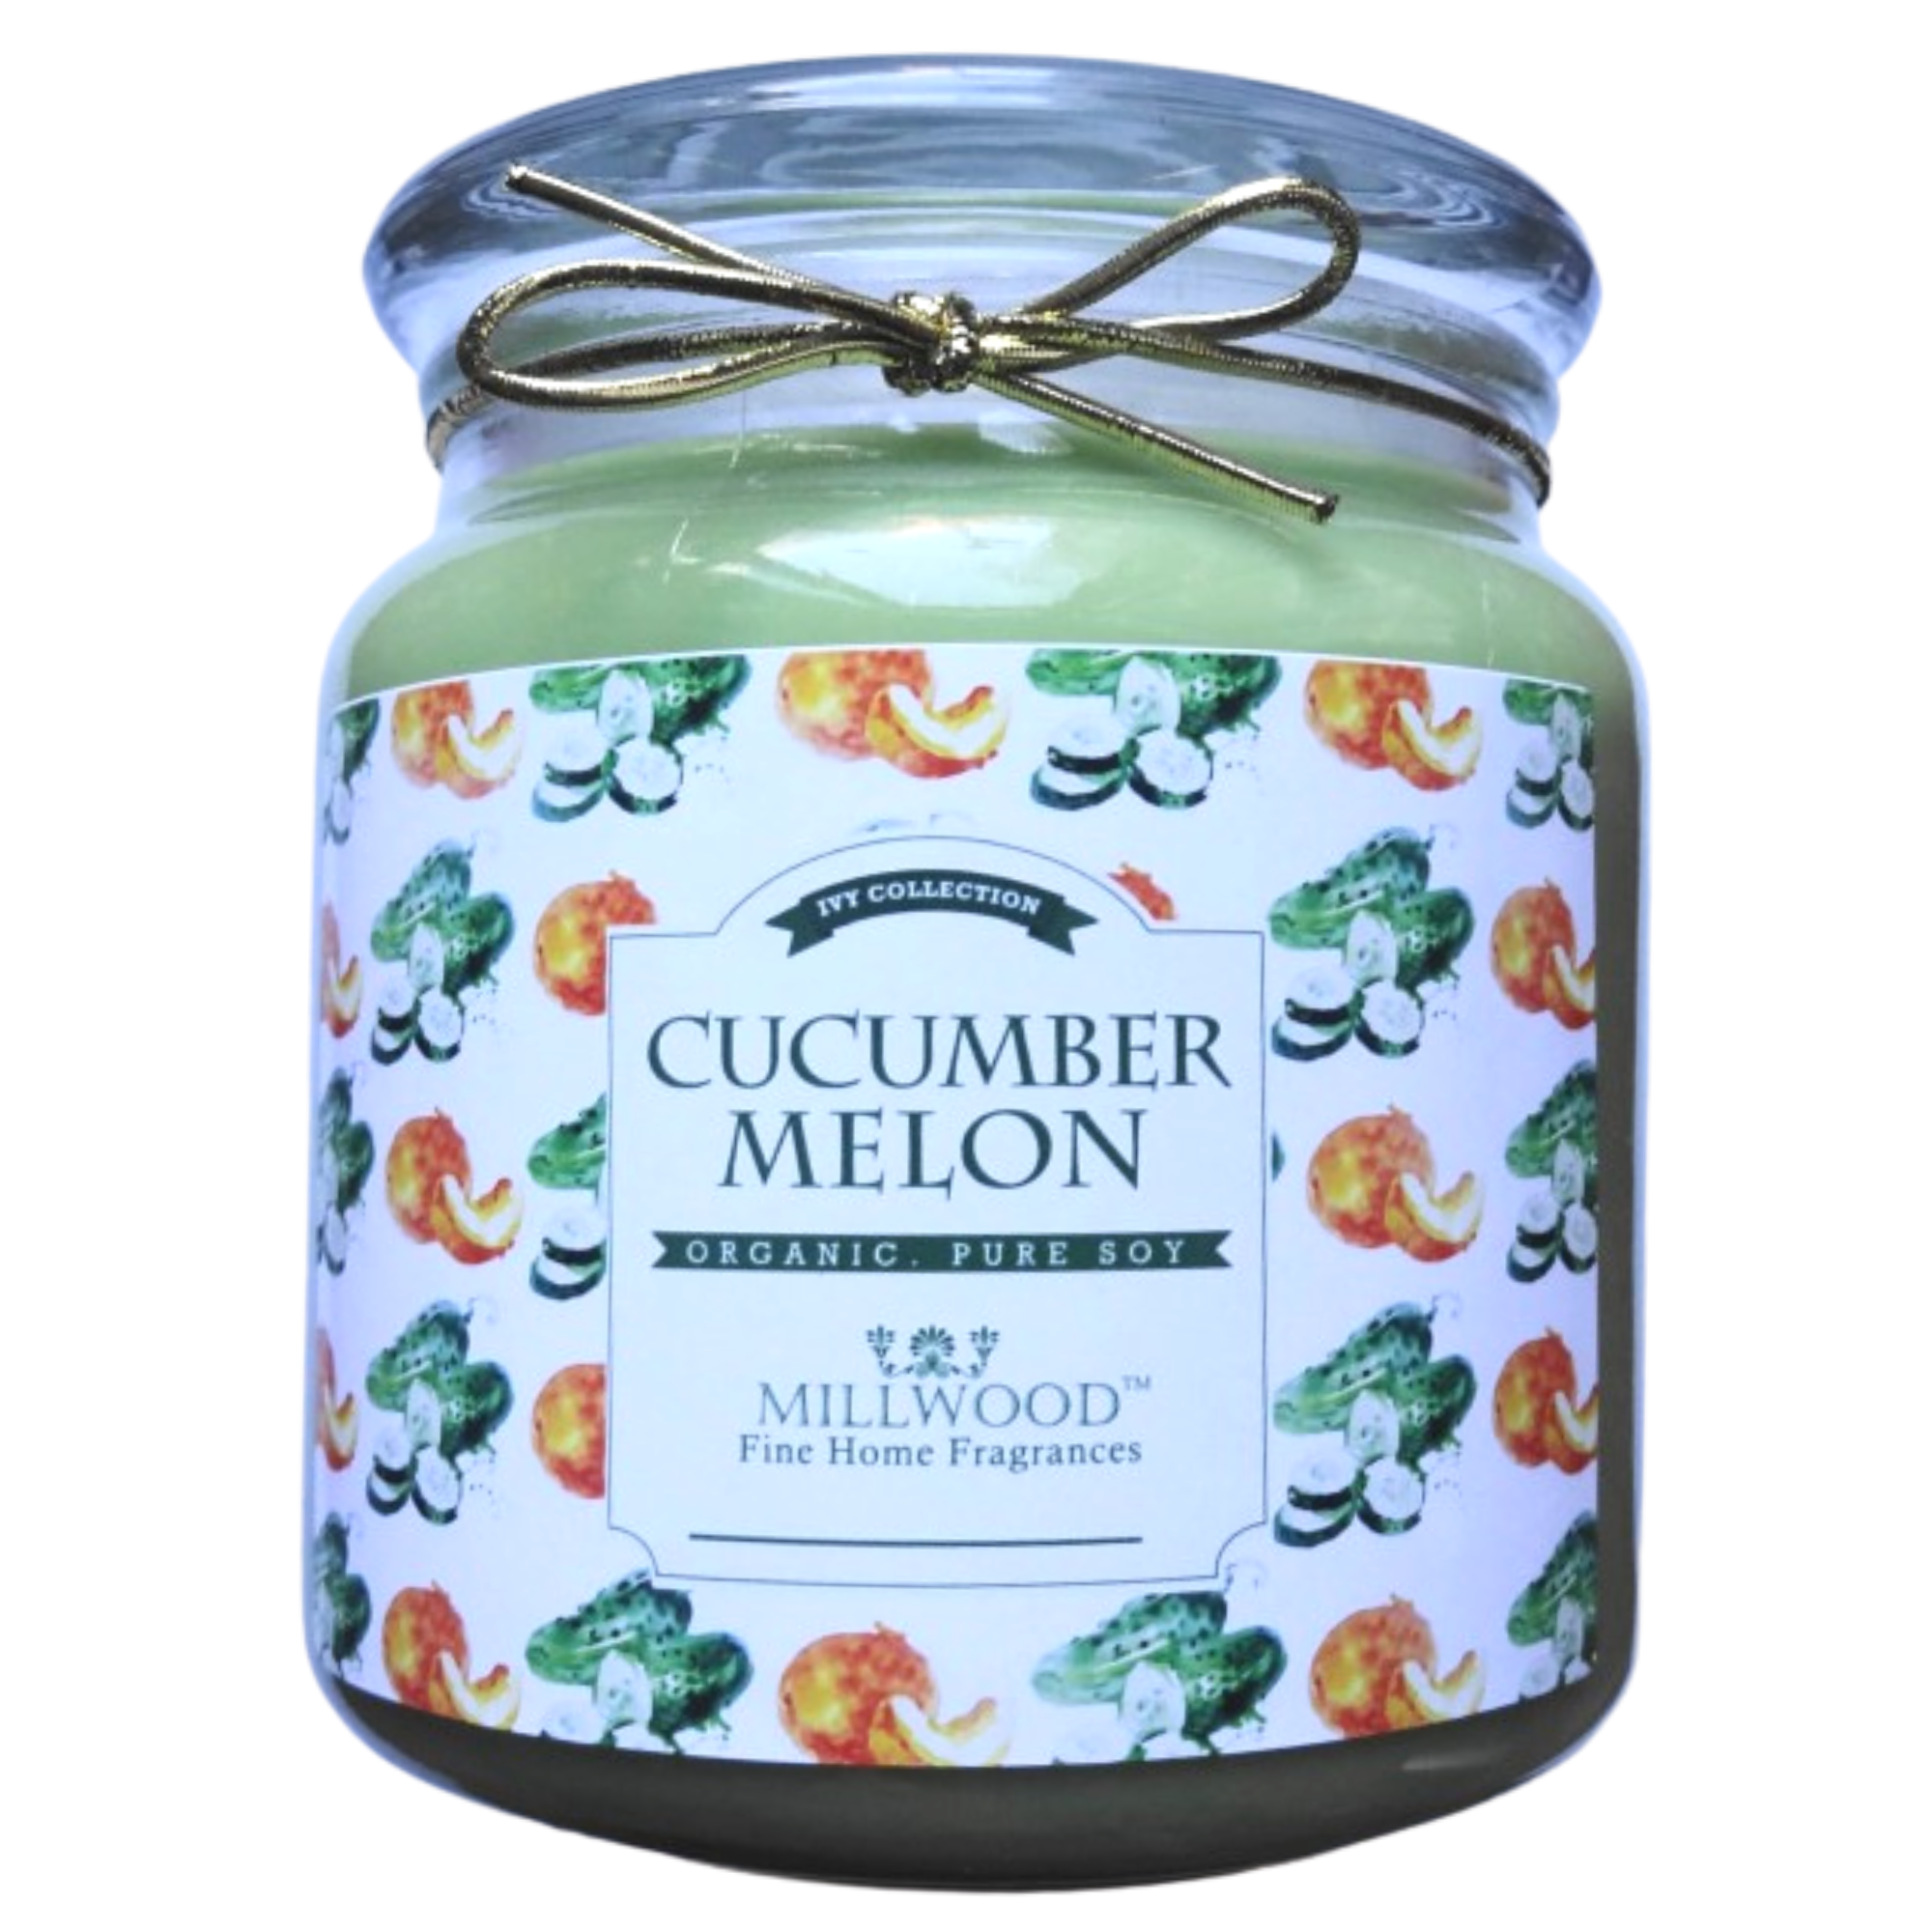 Cucumber Melon Soy Candle 16-oz